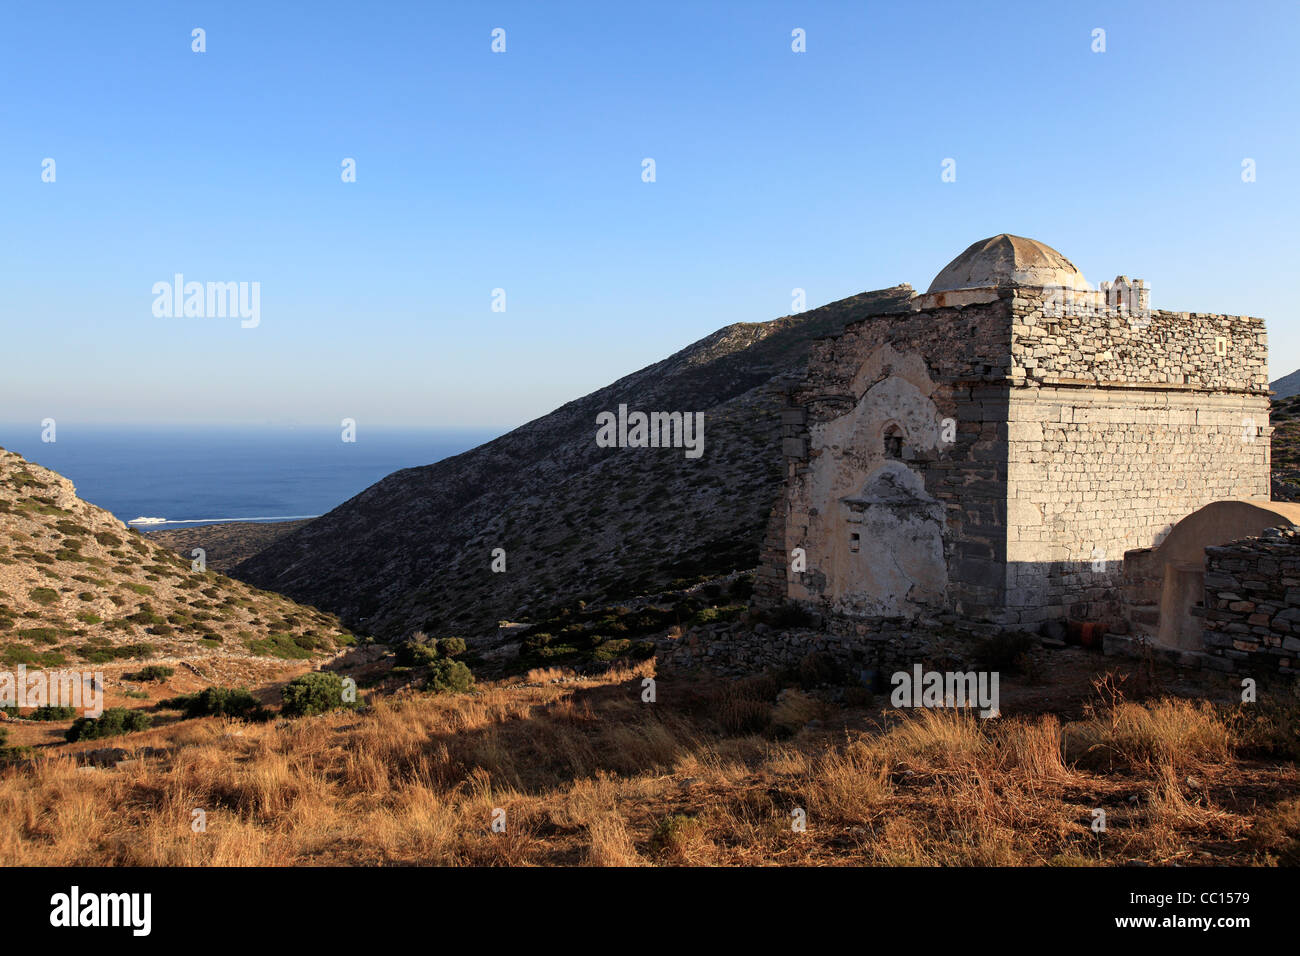 greece cyclades islands sikinos the ruined temple and church of episkopi - Stock Image